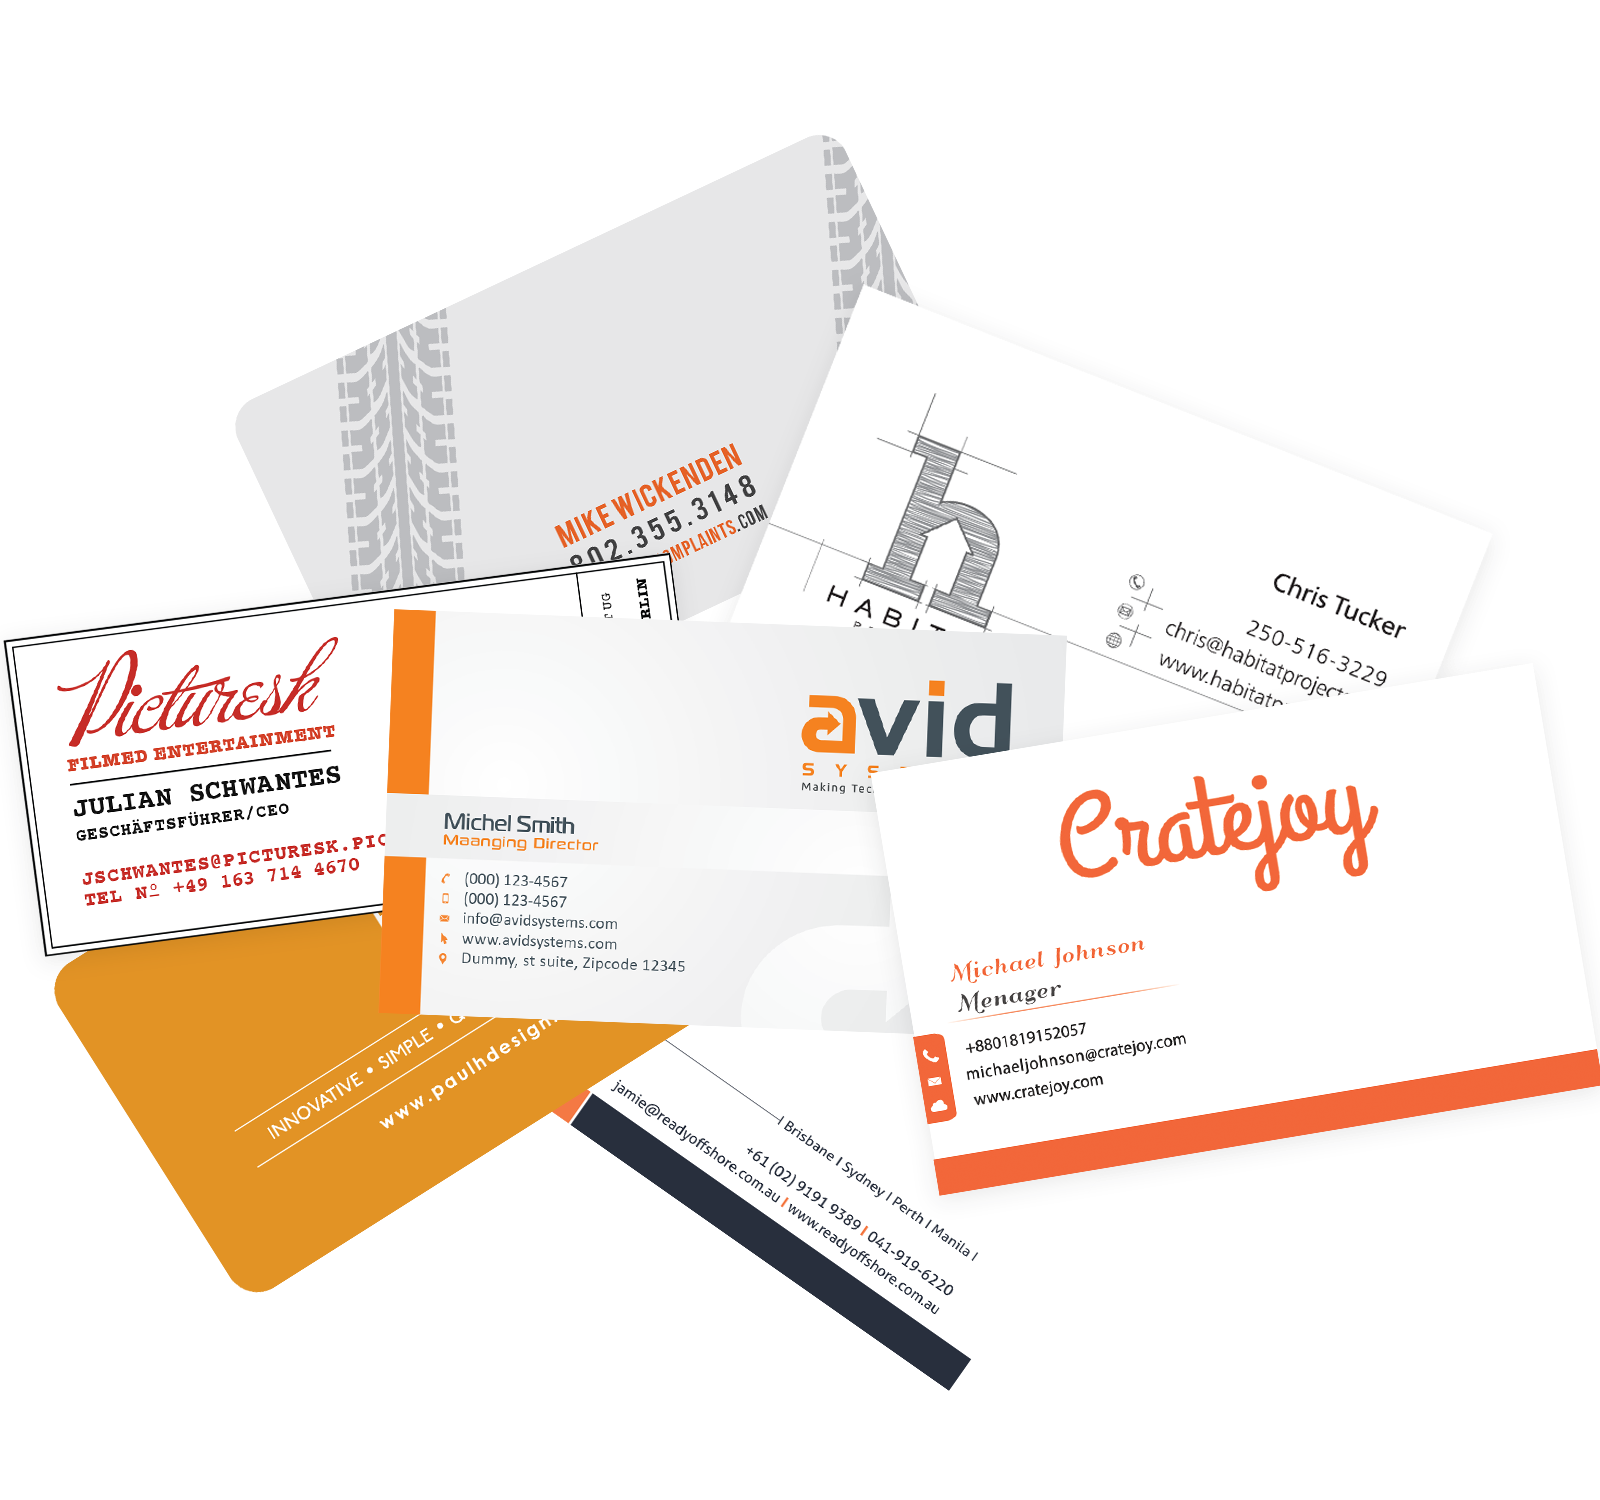 In what format to save business cards and booklets, created in Photoshop, for transfer to the printing house for printing